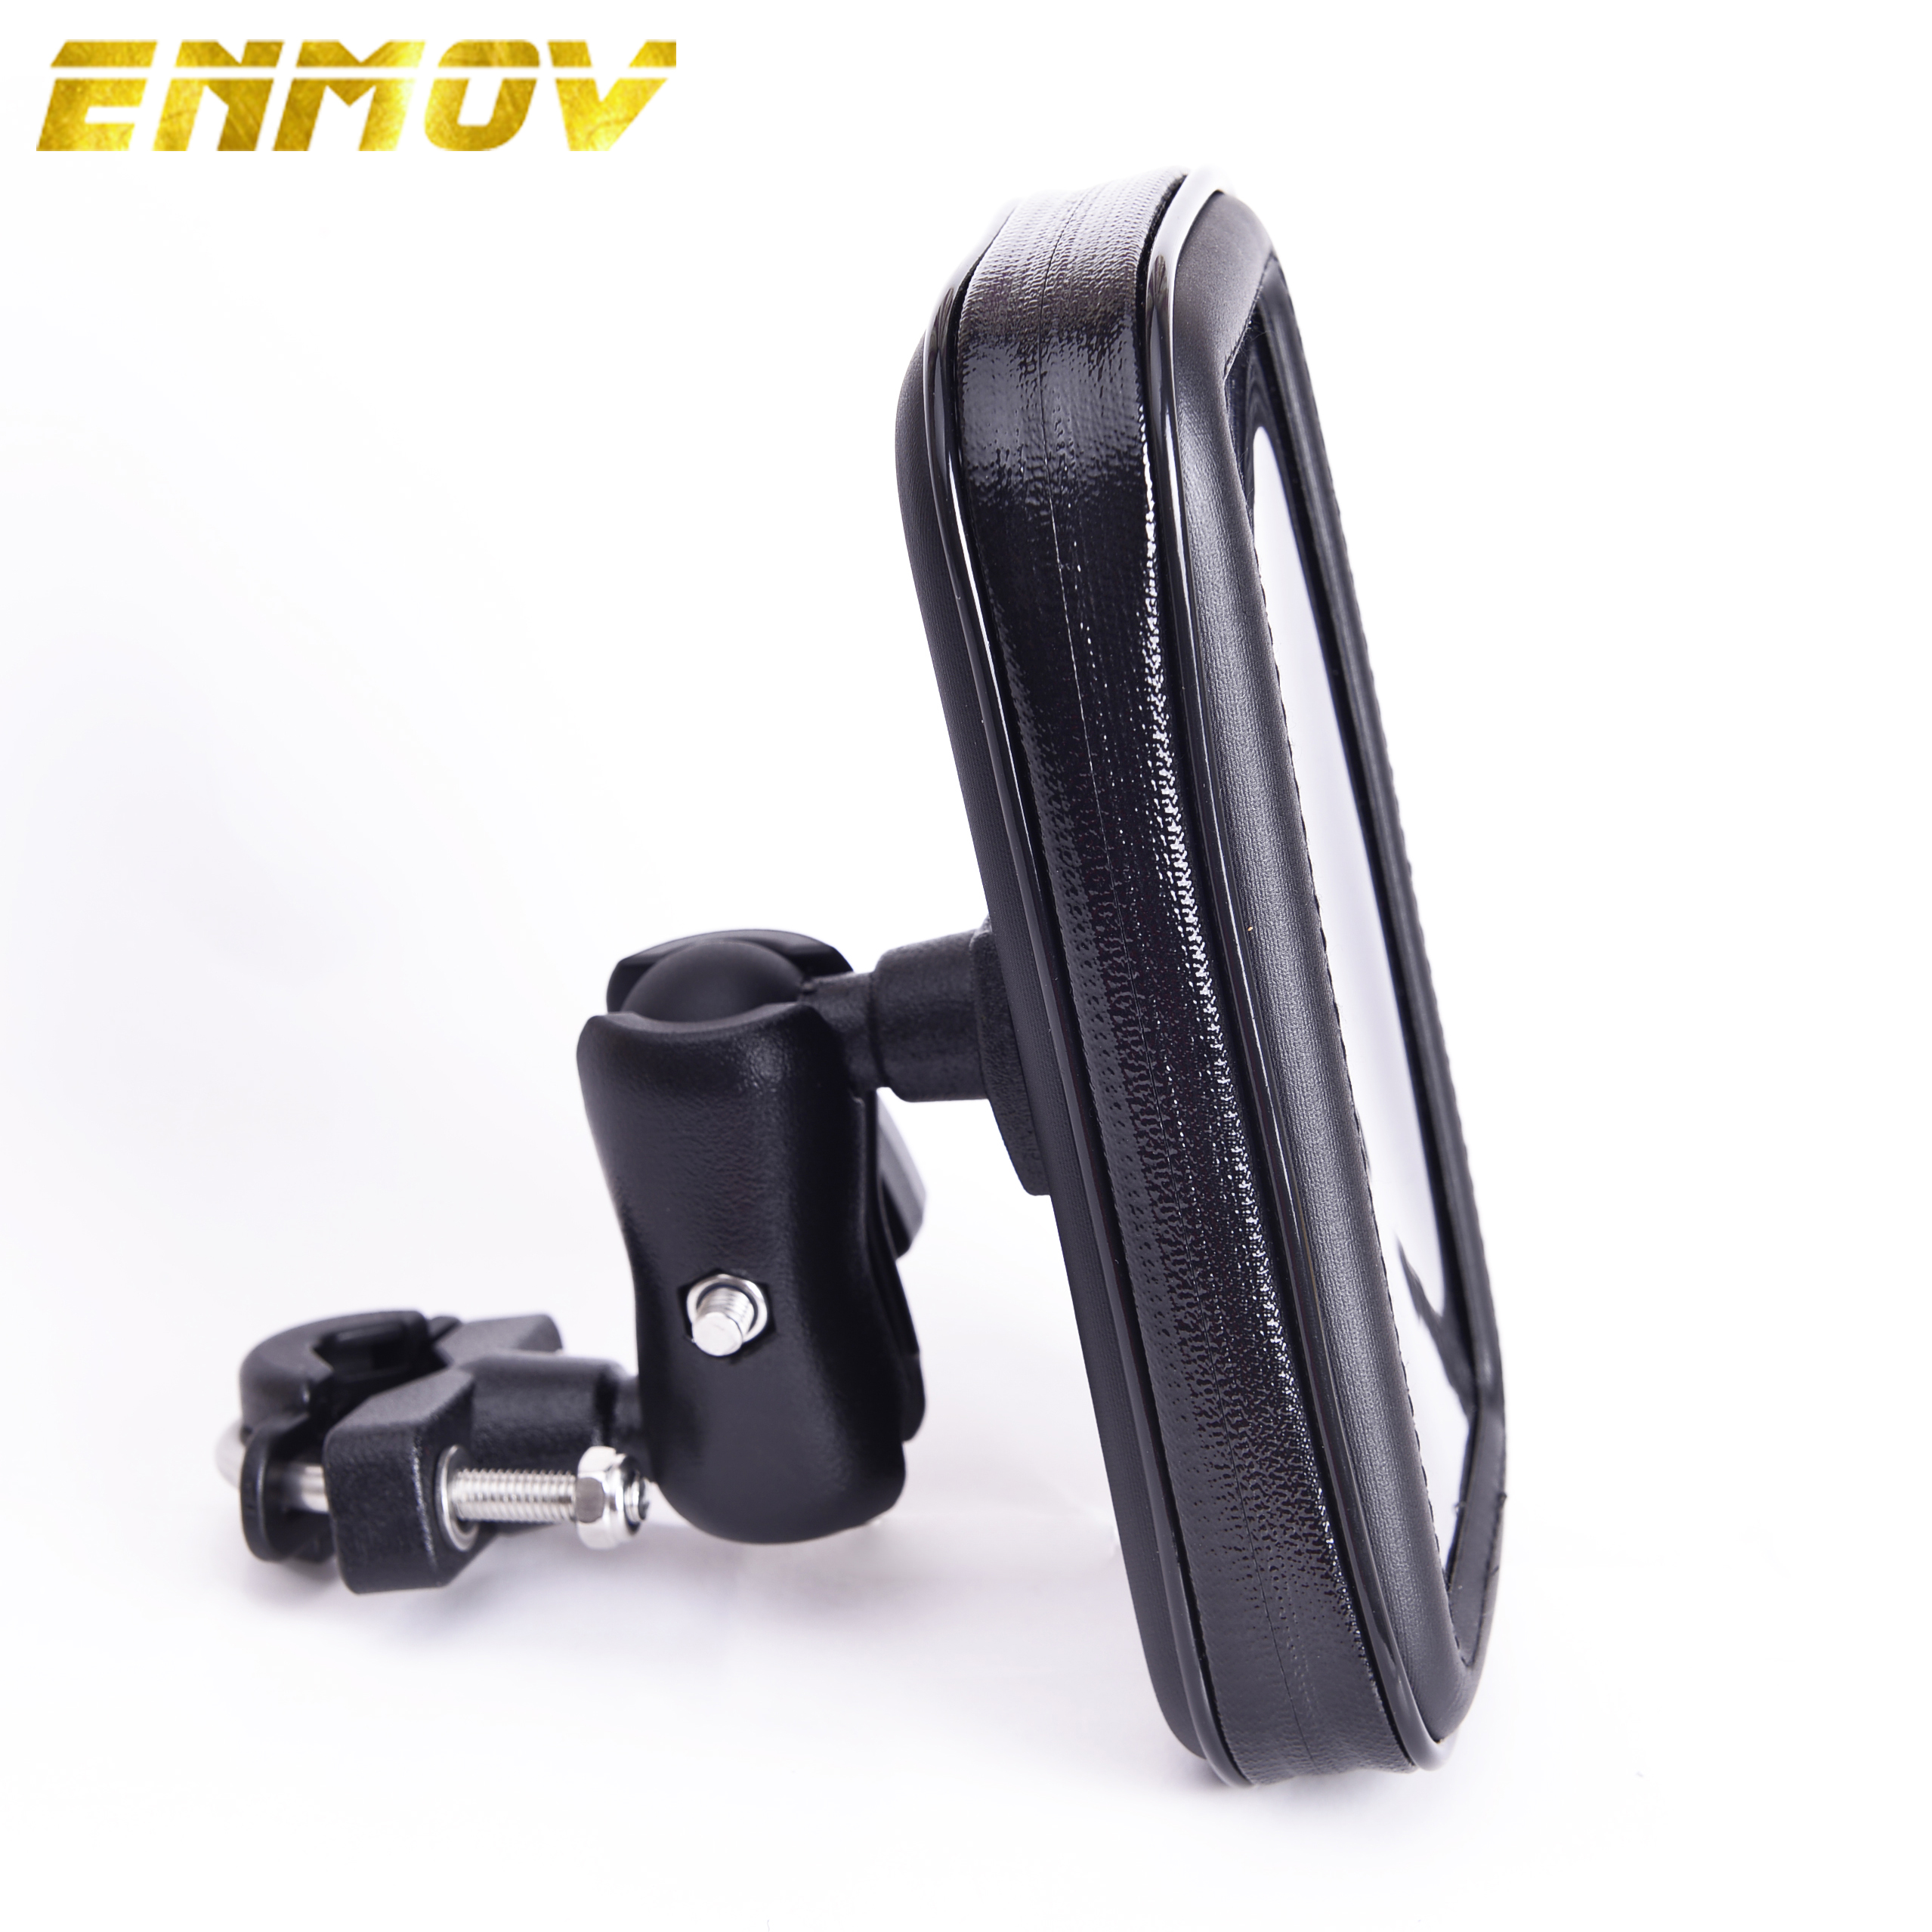 ENMOV <font><b>Bike</b></font> Mobile <font><b>Holder</b></font> Waterproof 360 Degree Rotation Motorcycle <font><b>Phone</b></font> <font><b>Holder</b></font> Handlebar Mount Cell <font><b>Phone</b></font> Stand image